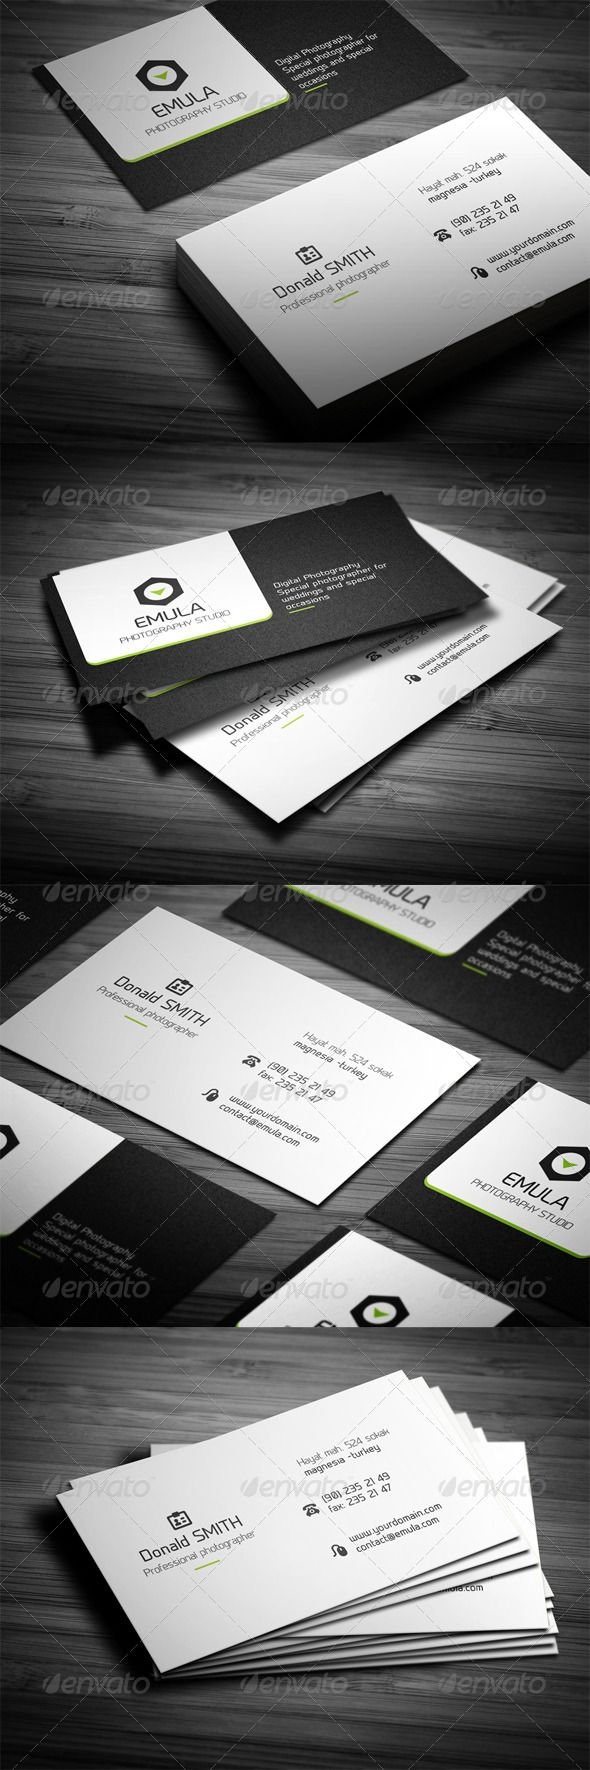 8 best Photographers, Photography Studios Business Cards images on ...